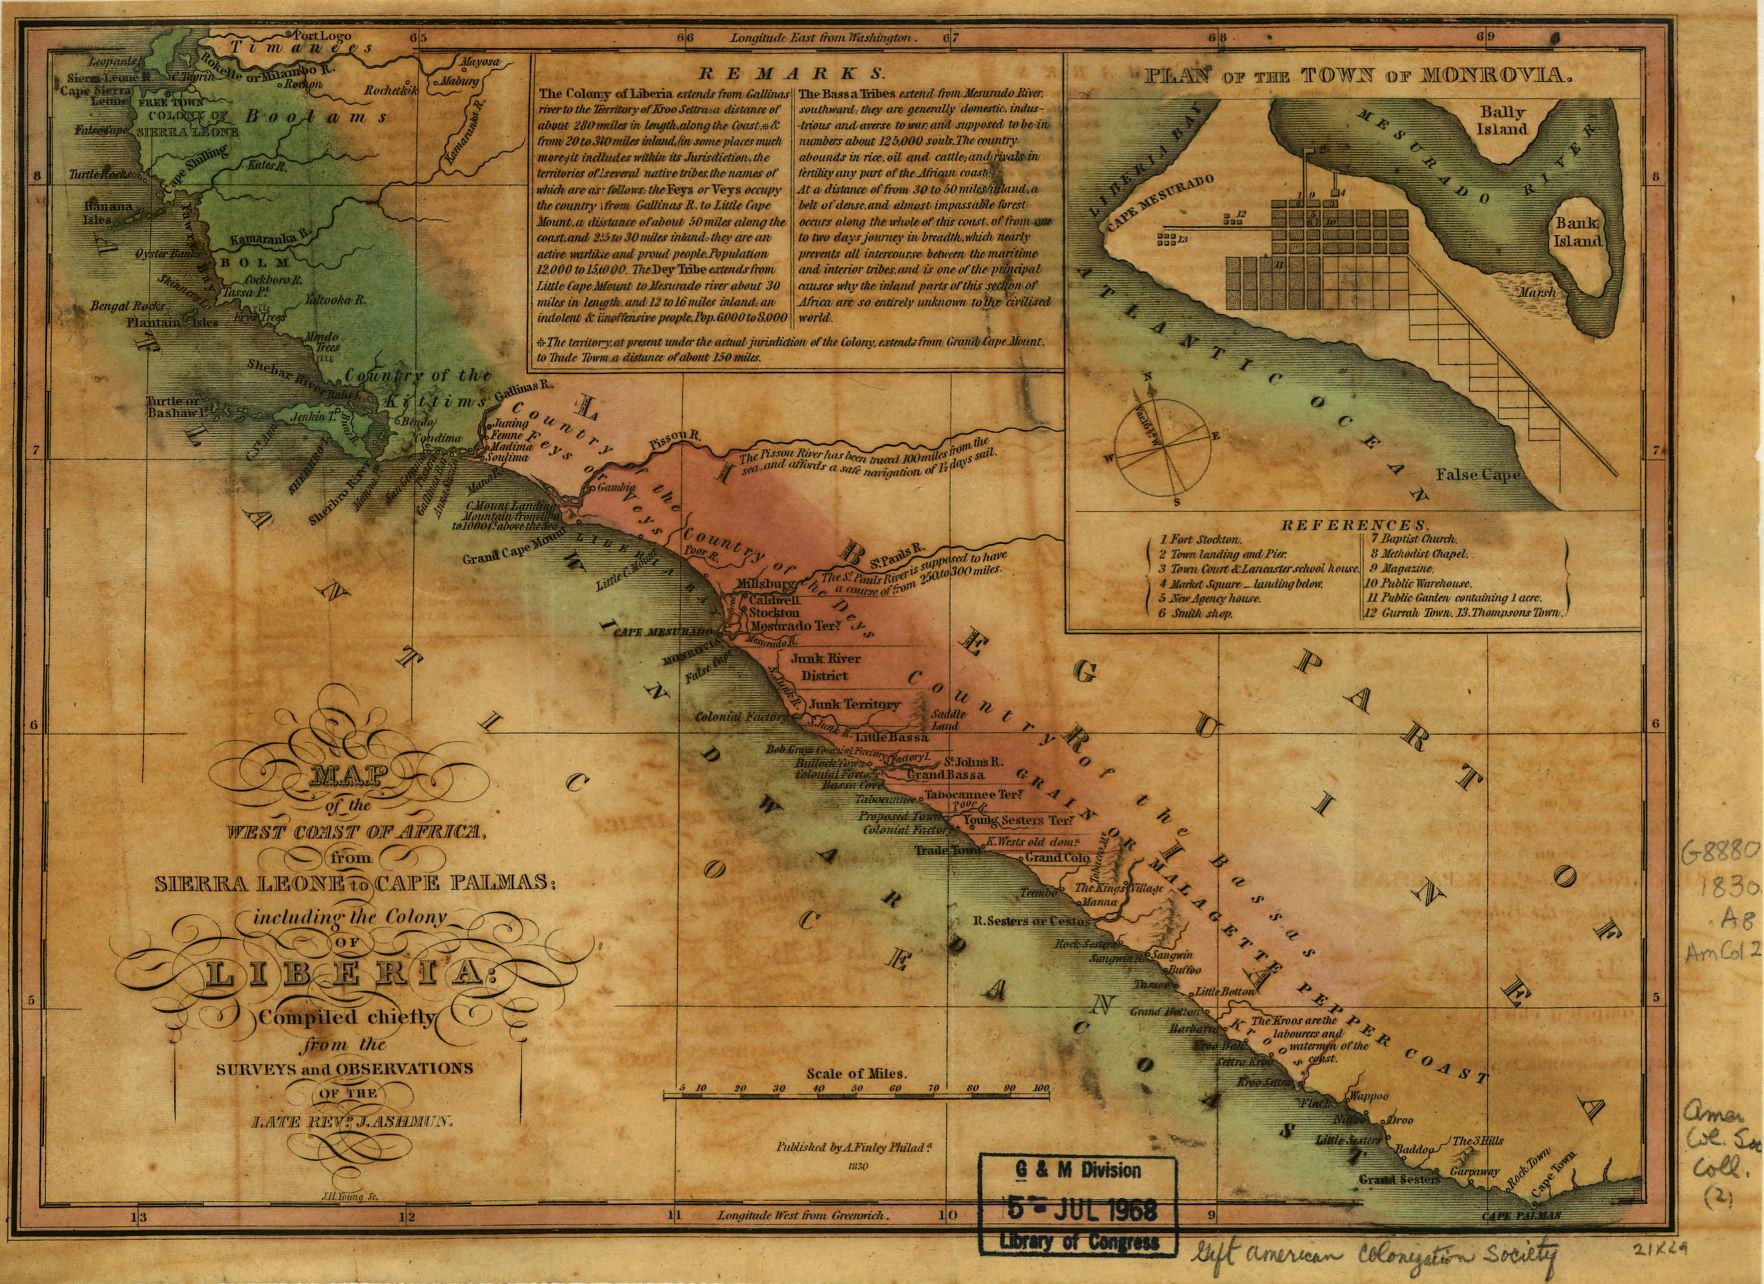 A map of Liberia and environs, from the 1830s (Library of Congress)